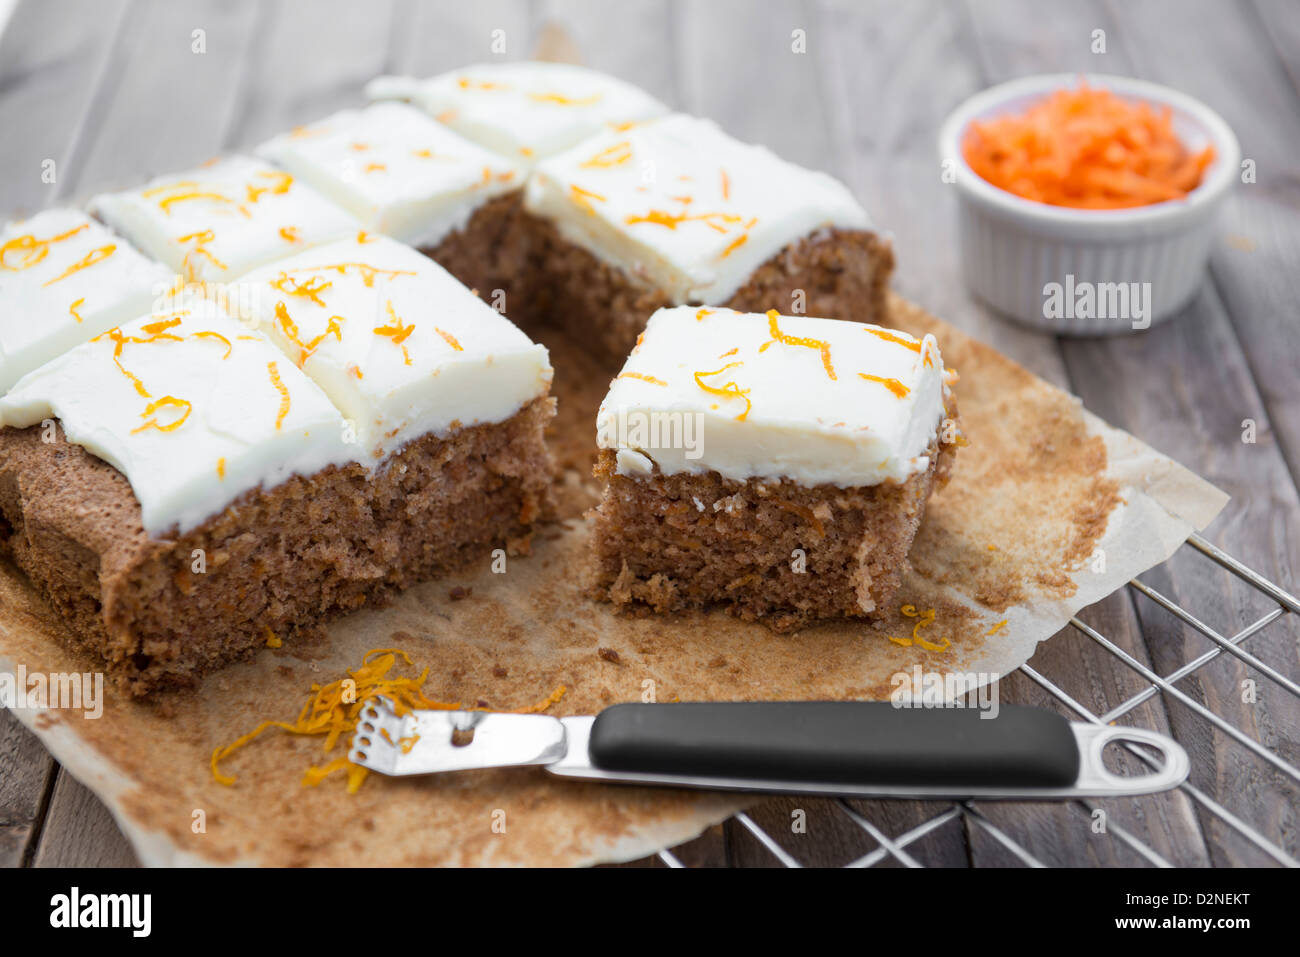 Carrot cake on a baking tray. - Stock Image